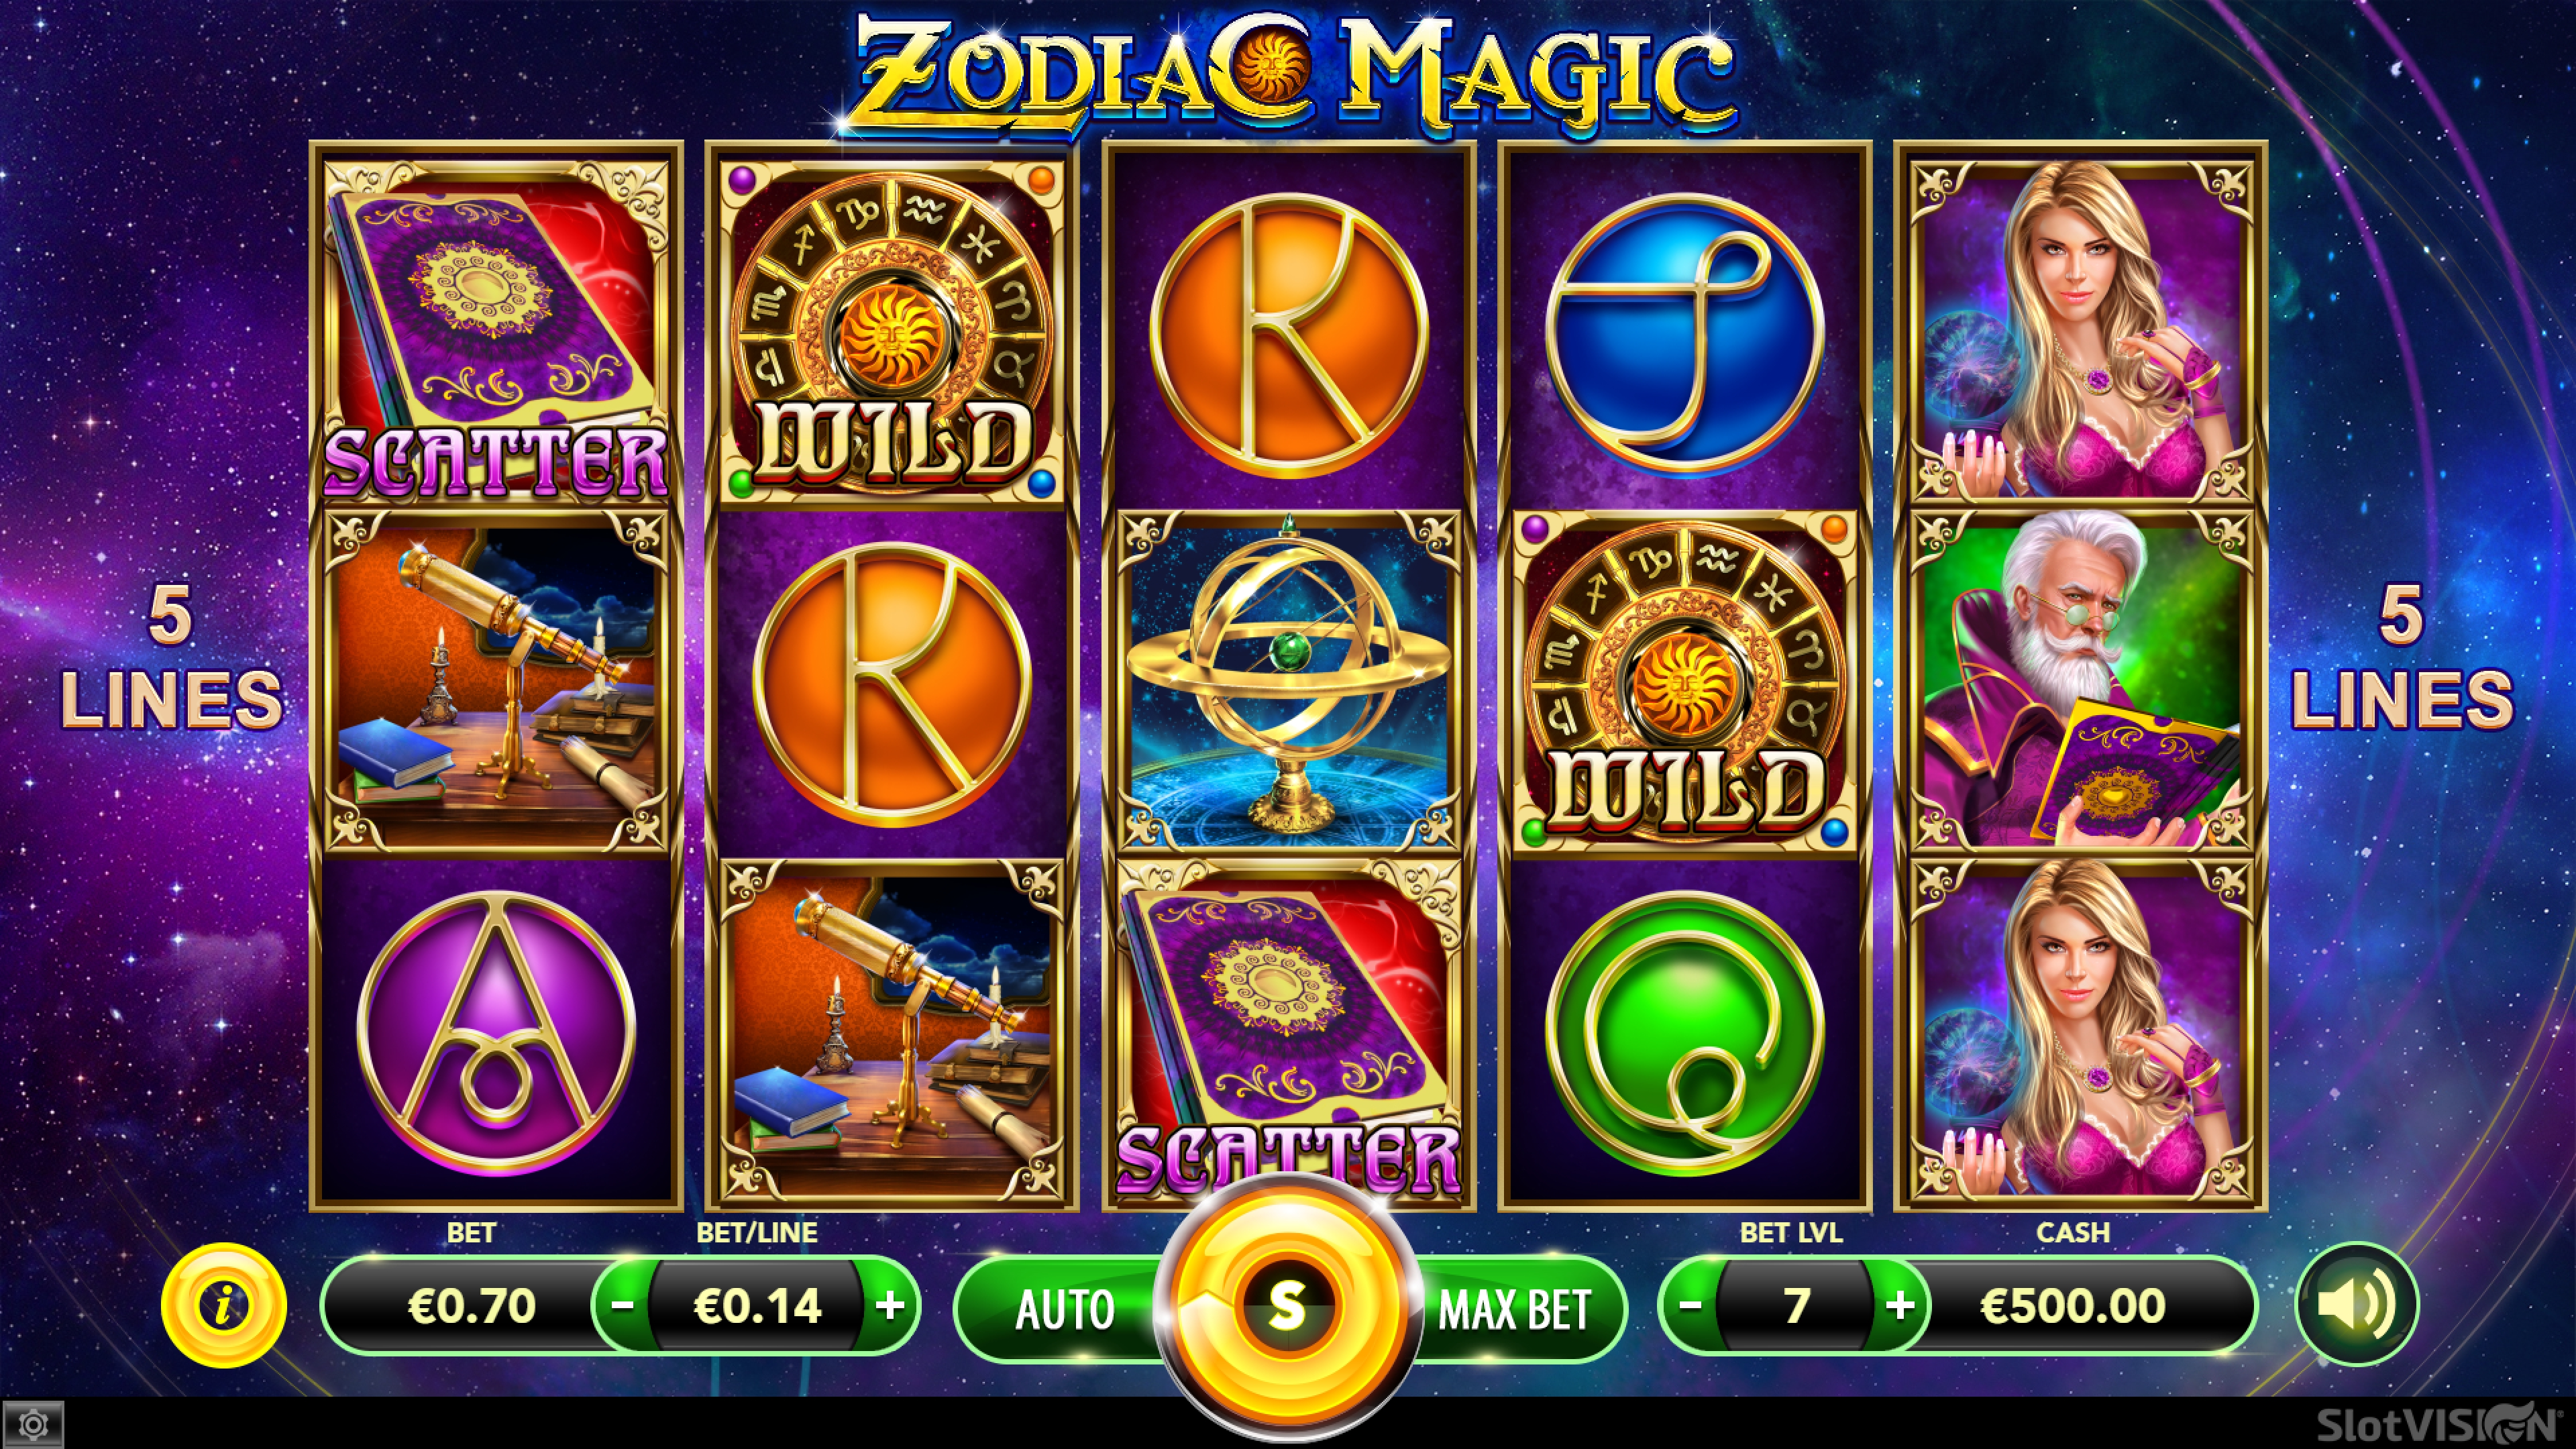 The Zodiac Magic Online Slot Demo Game by SlotVision